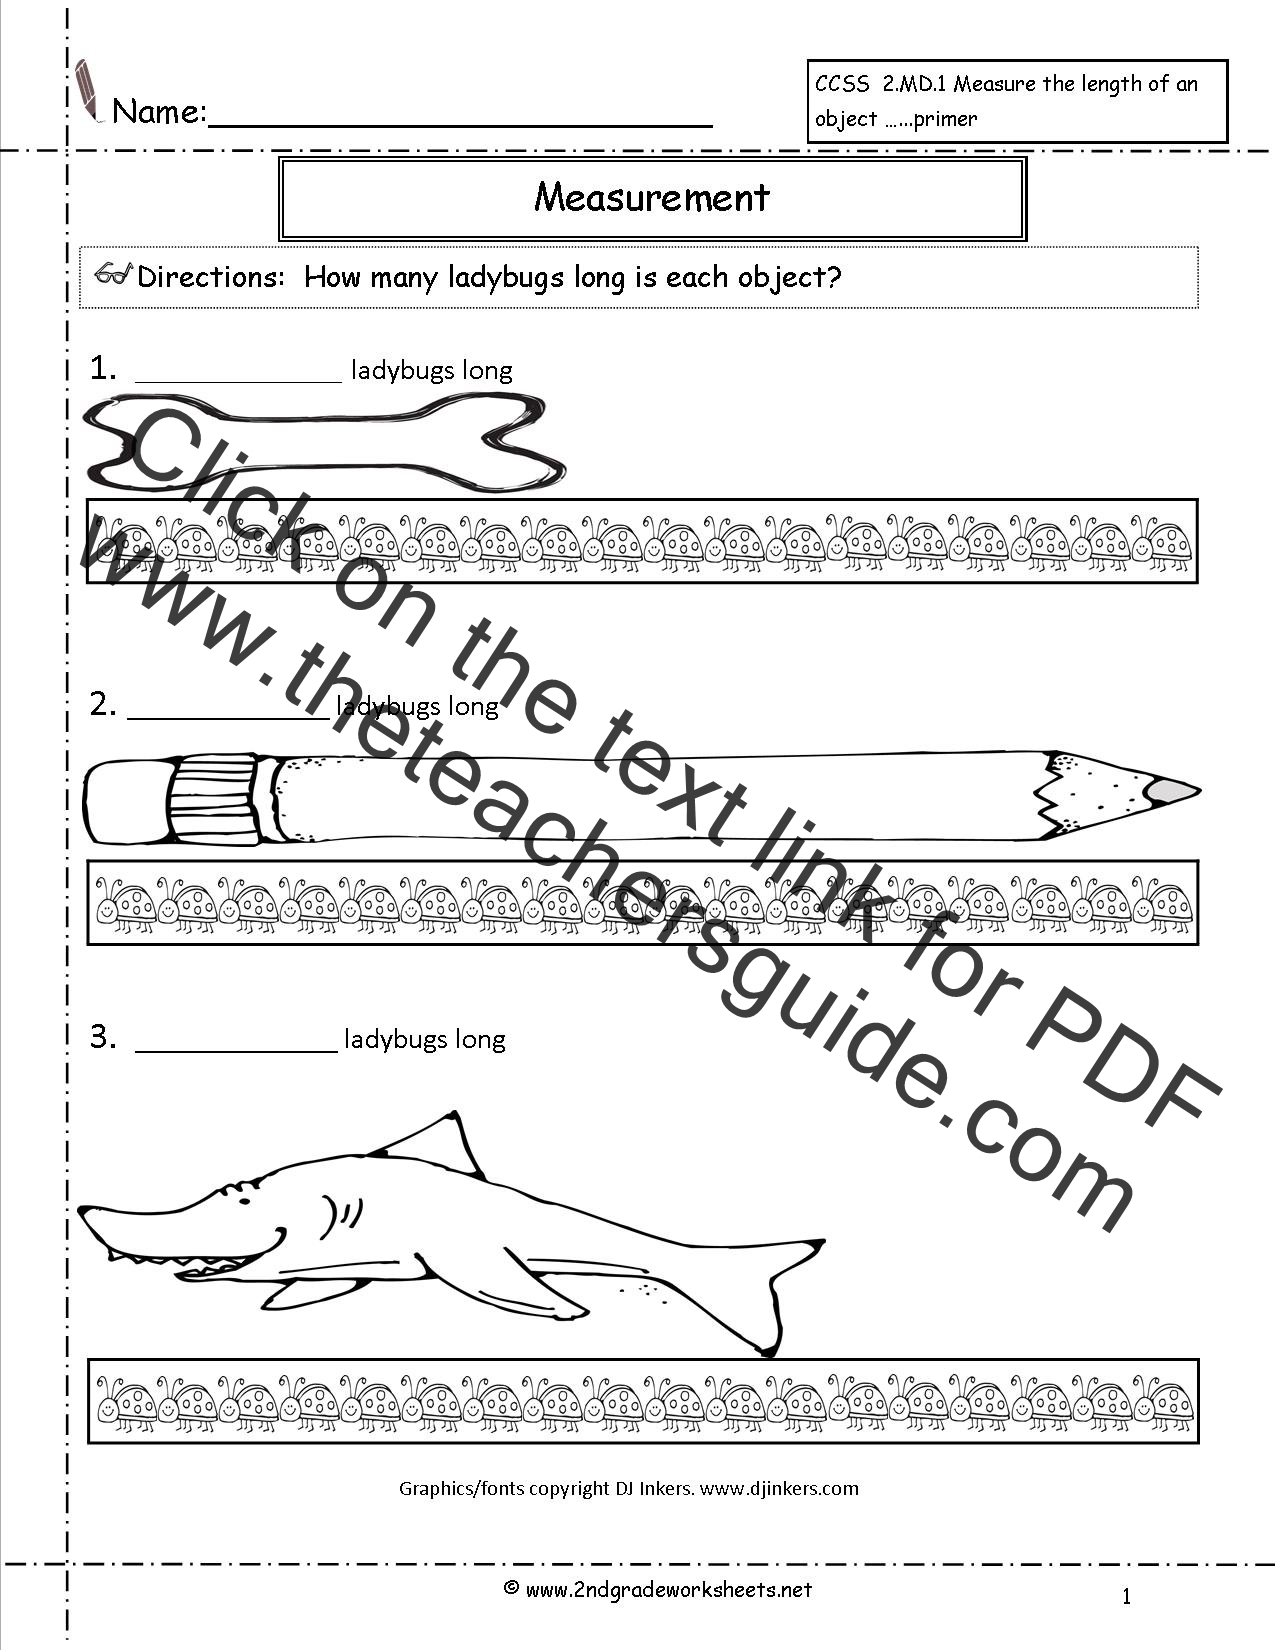 Printables Tape Measure Worksheets ccss 2 md 1 worksheets measuring worksheet